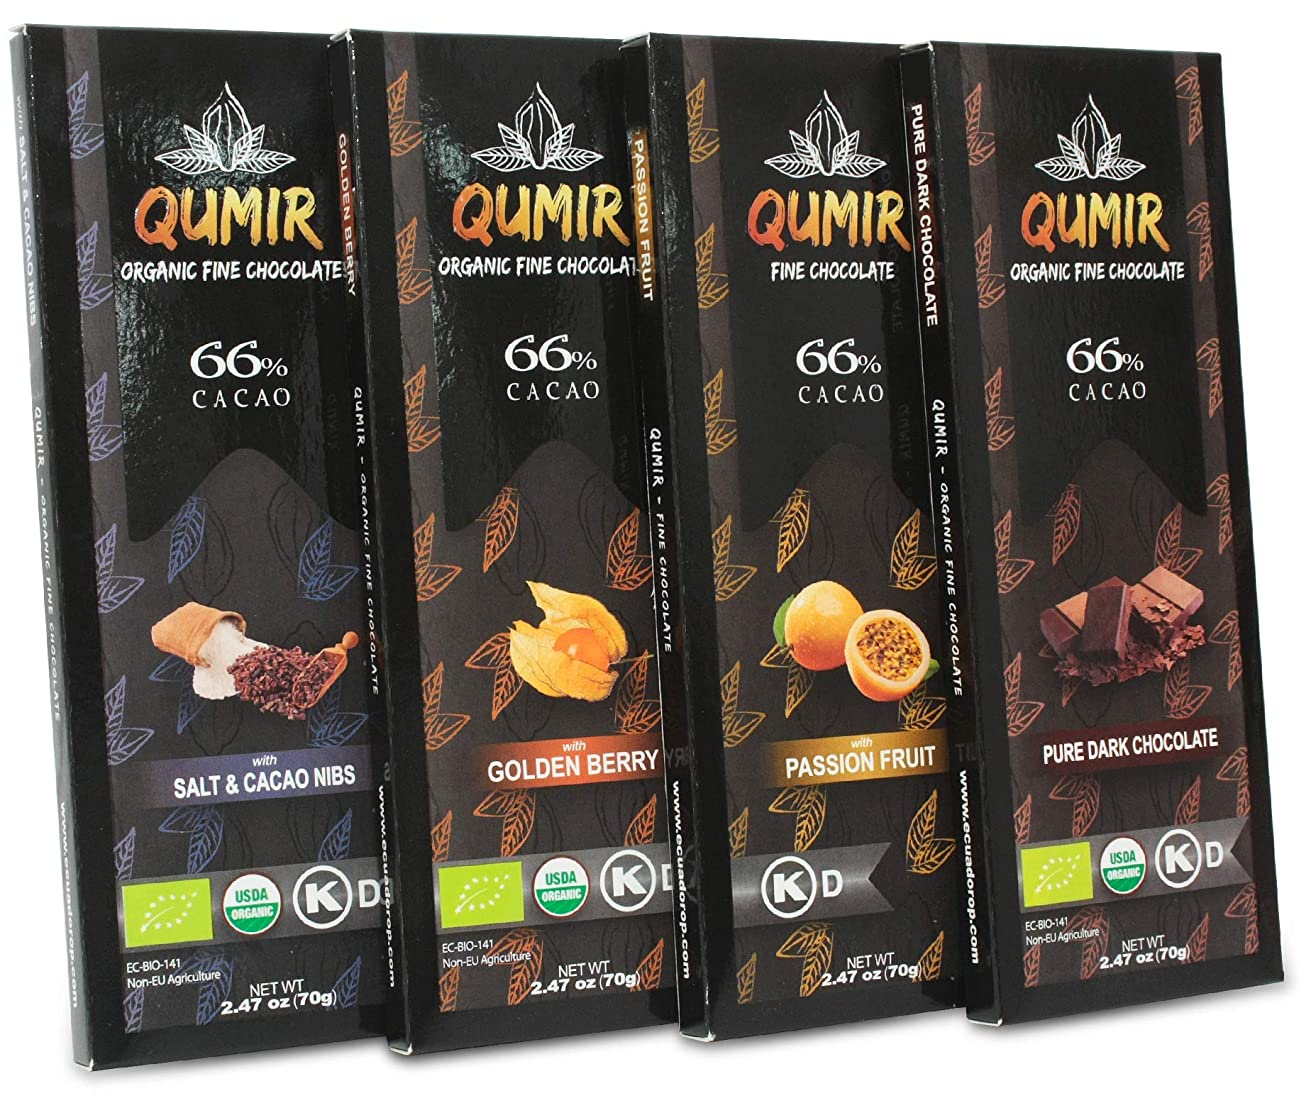 Qumir Dark Chocolate | 4 Pack, Plain, Passion Fruit, Salt and Nibs, Golden Berry | made with amazon arriba cacao beans | Pack of 4 Bars, 2.47oz each.